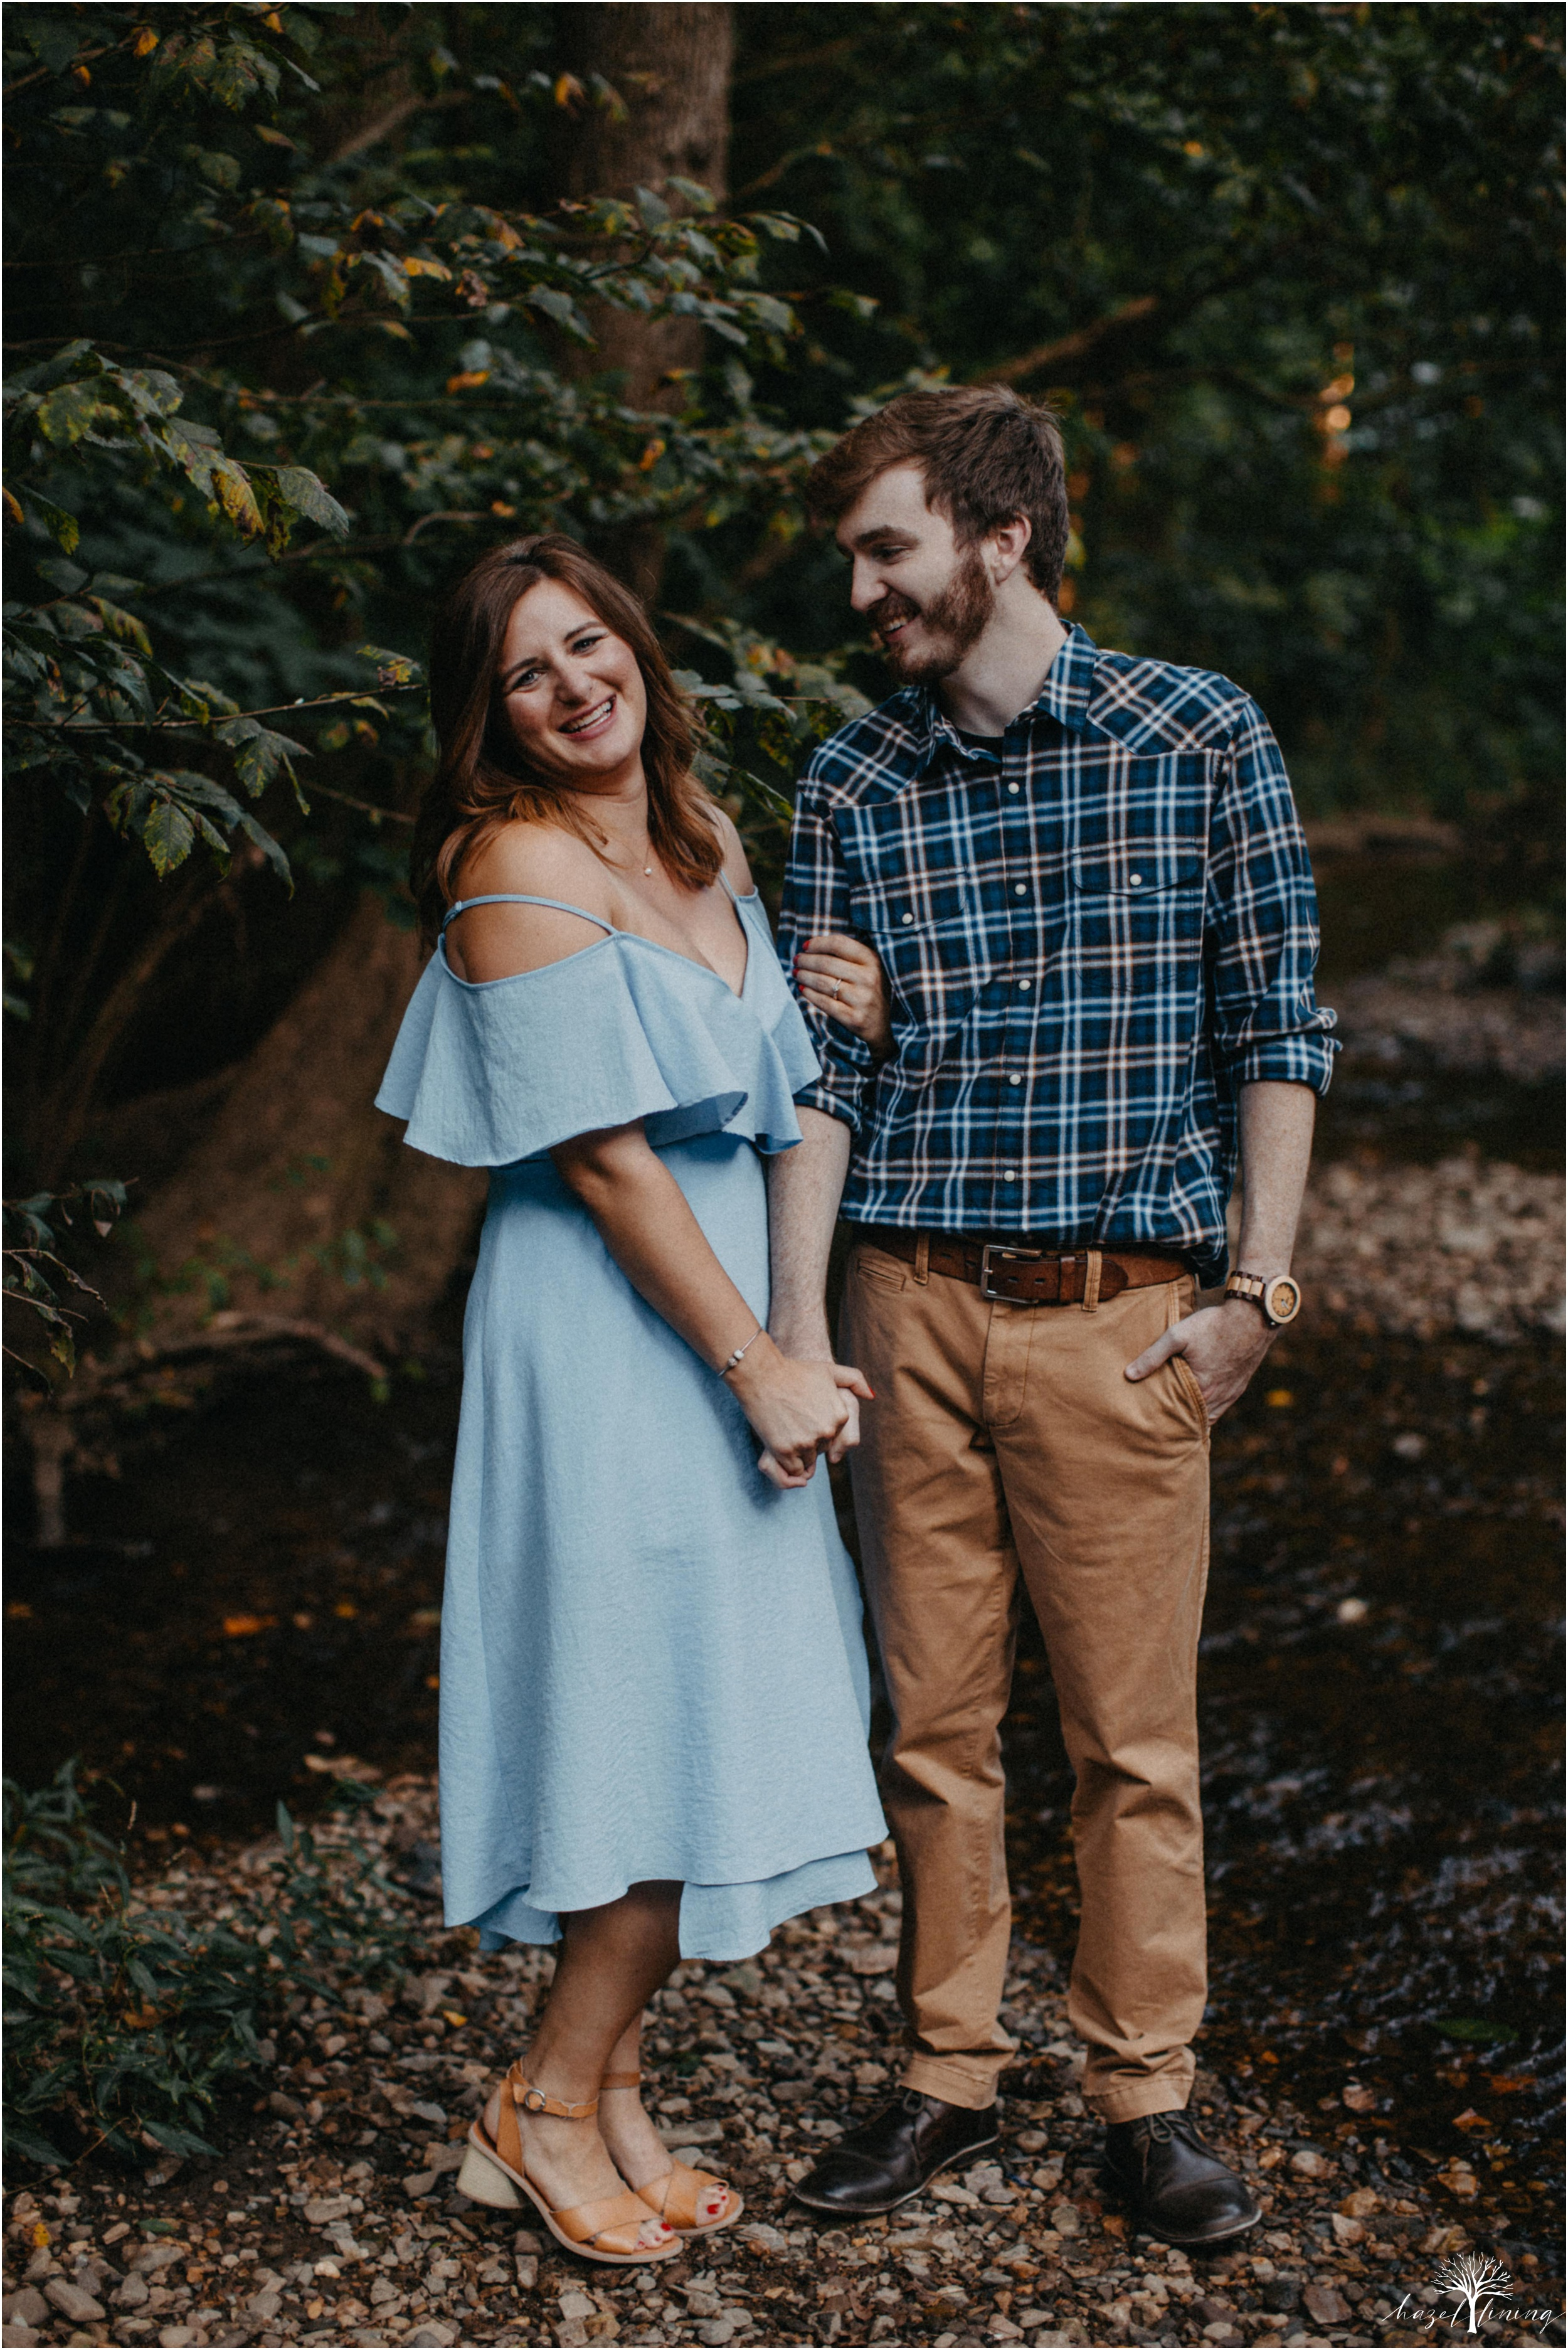 paige-kochey-chris-graham-valley-green-wissahickon-park-philadelphia-summer-engagement-session-hazel-lining-photography-destination-elopement-wedding-engagement-photography_0025.jpg